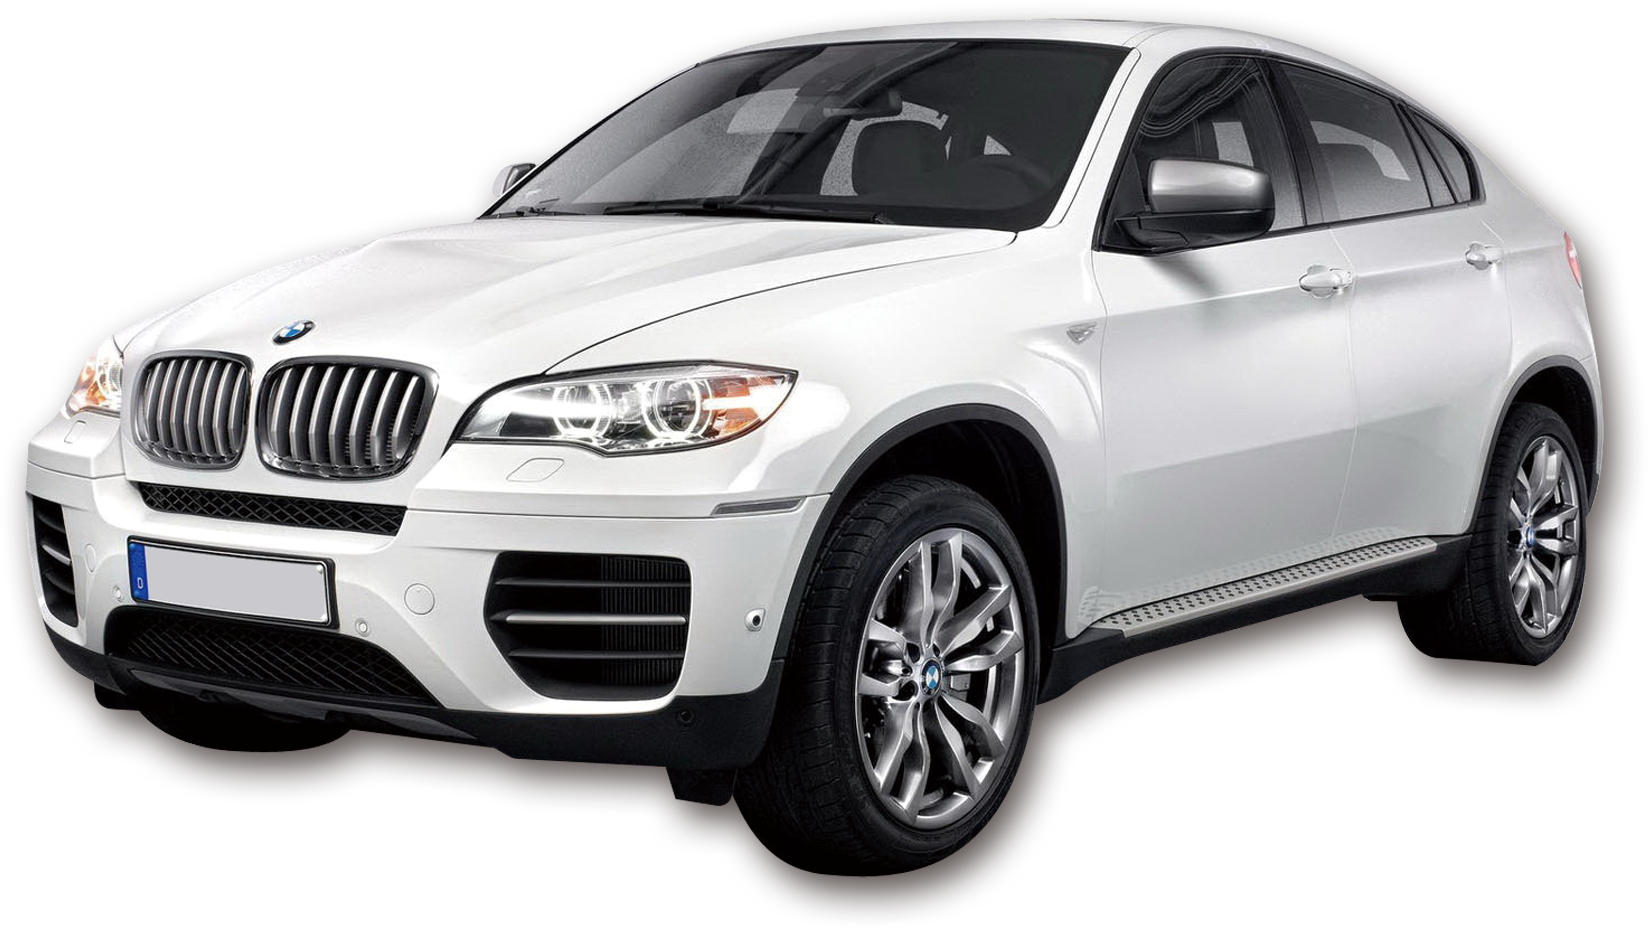 Car M50D Bmw X6 2013 Download Free Image PNG Image